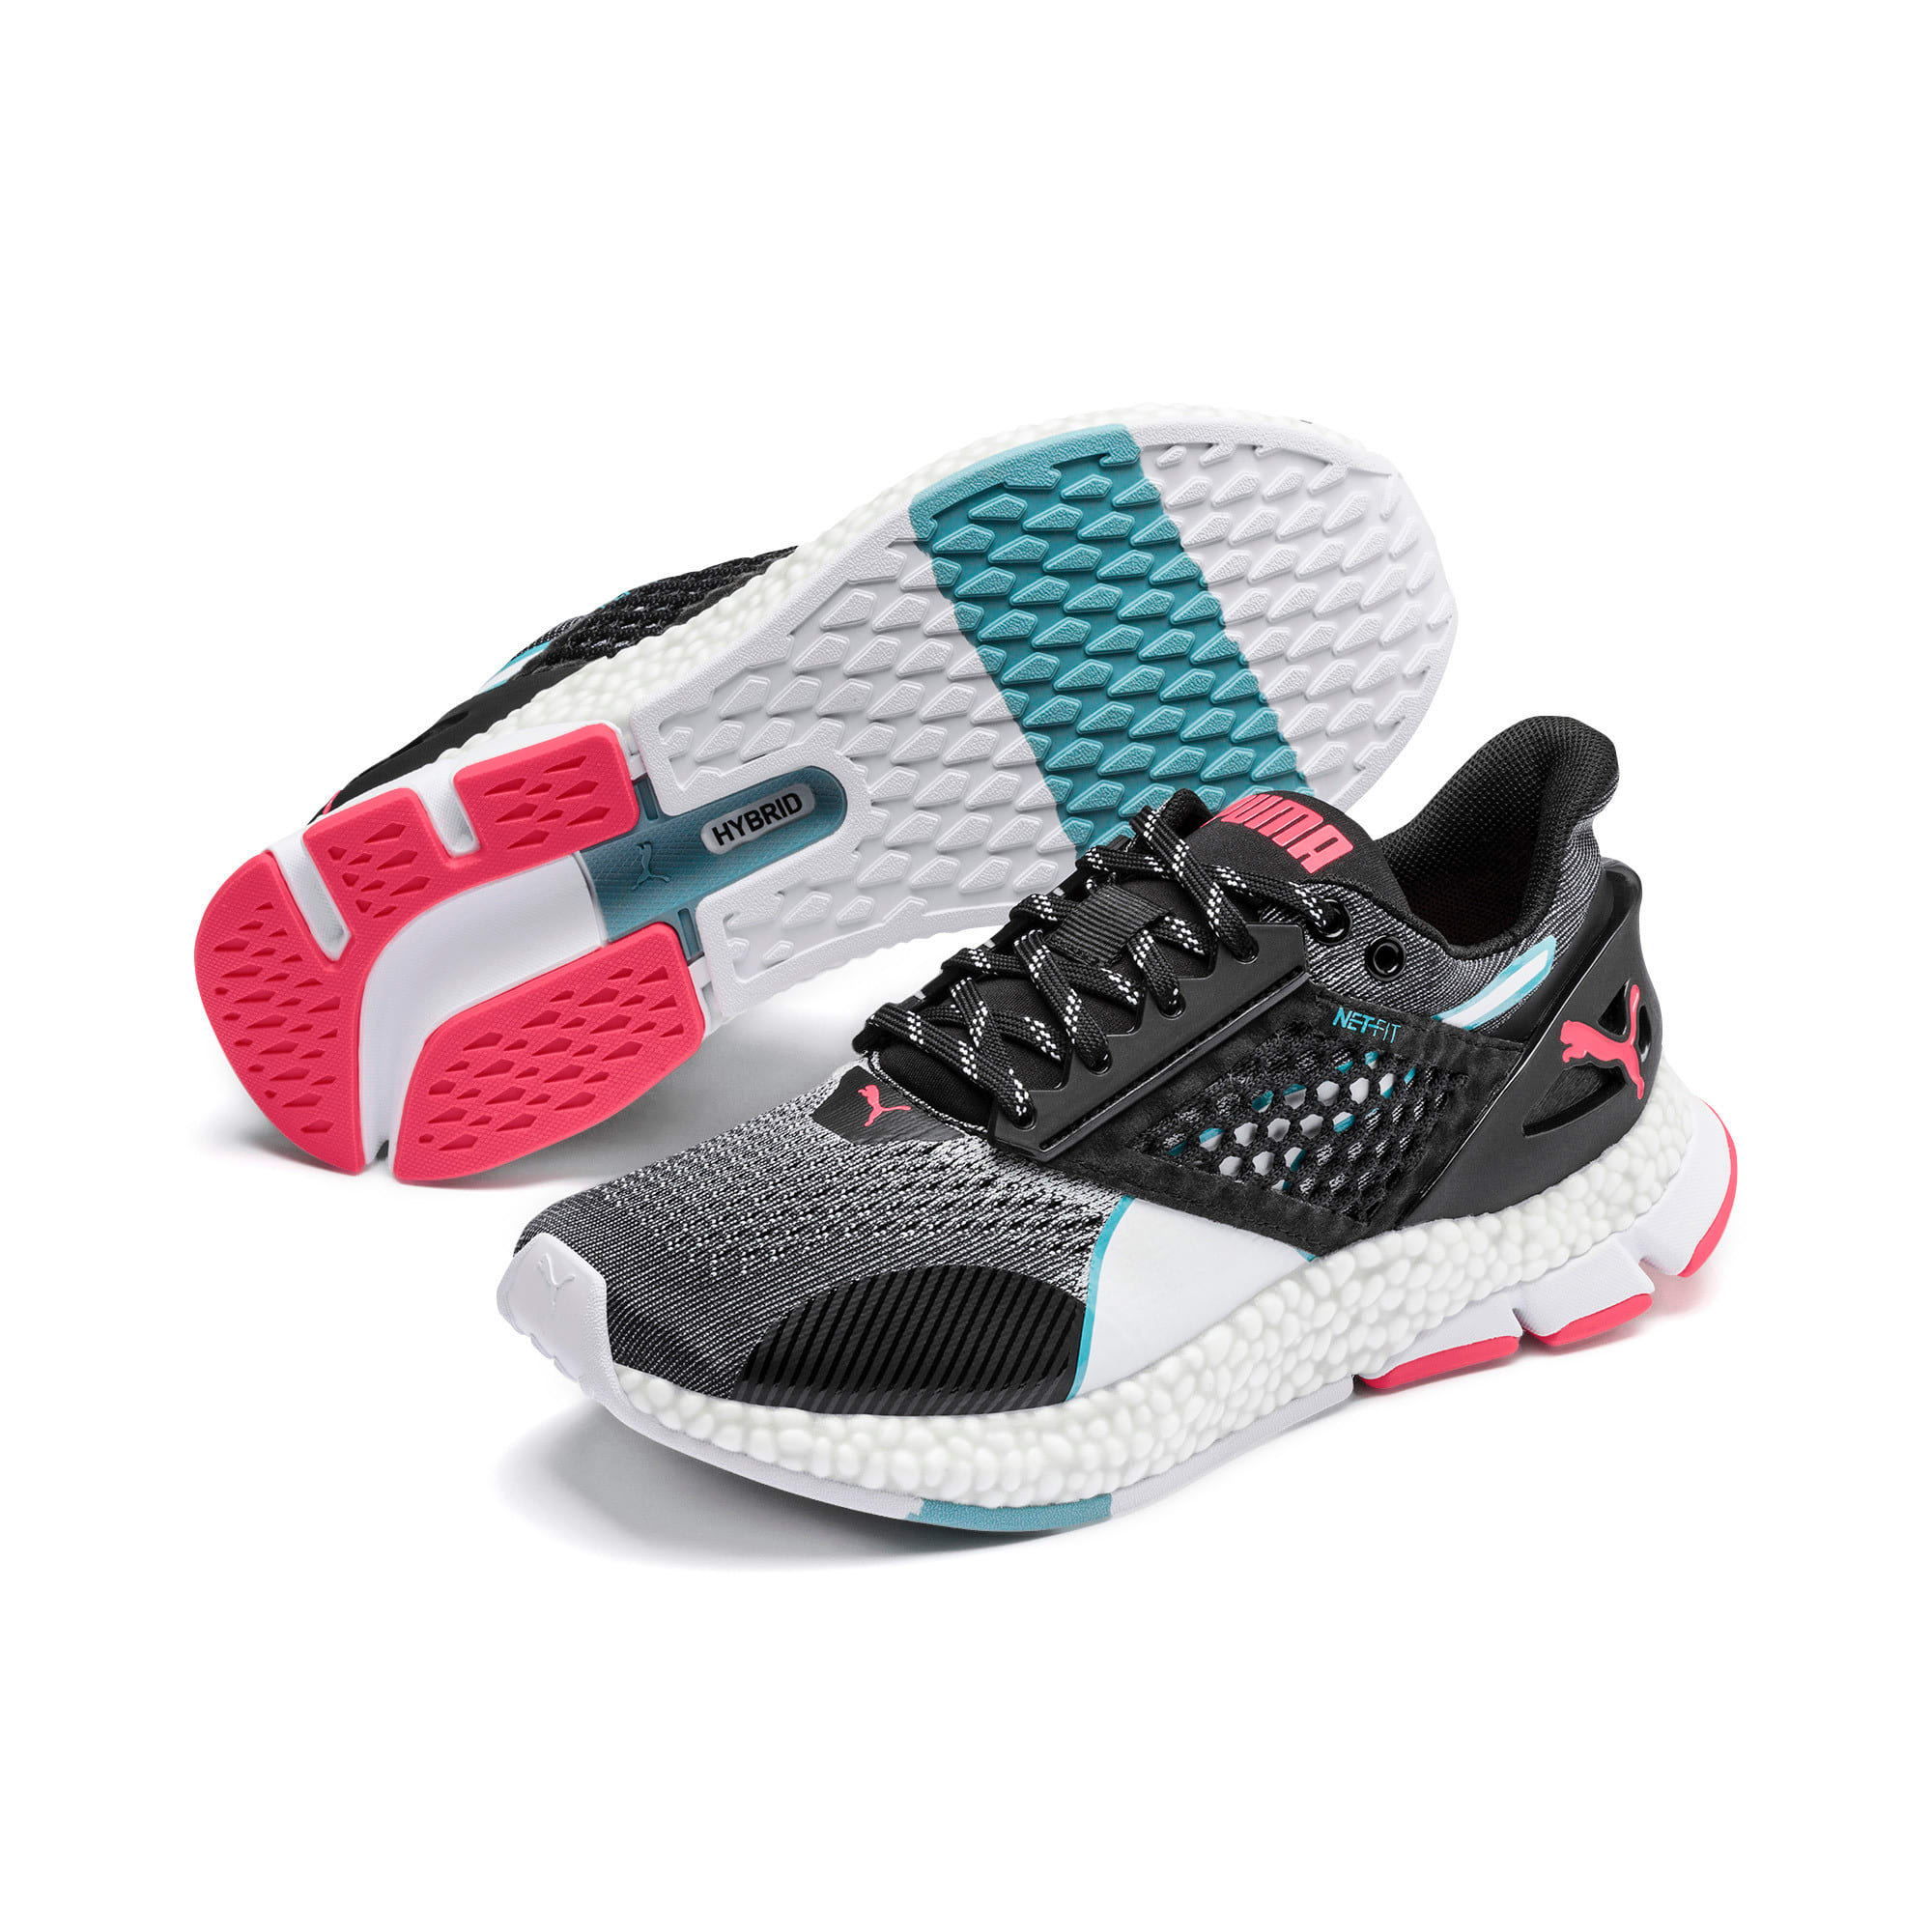 HYBRID Astro Women's Running Shoes, Puma Black-Pink Alert, large